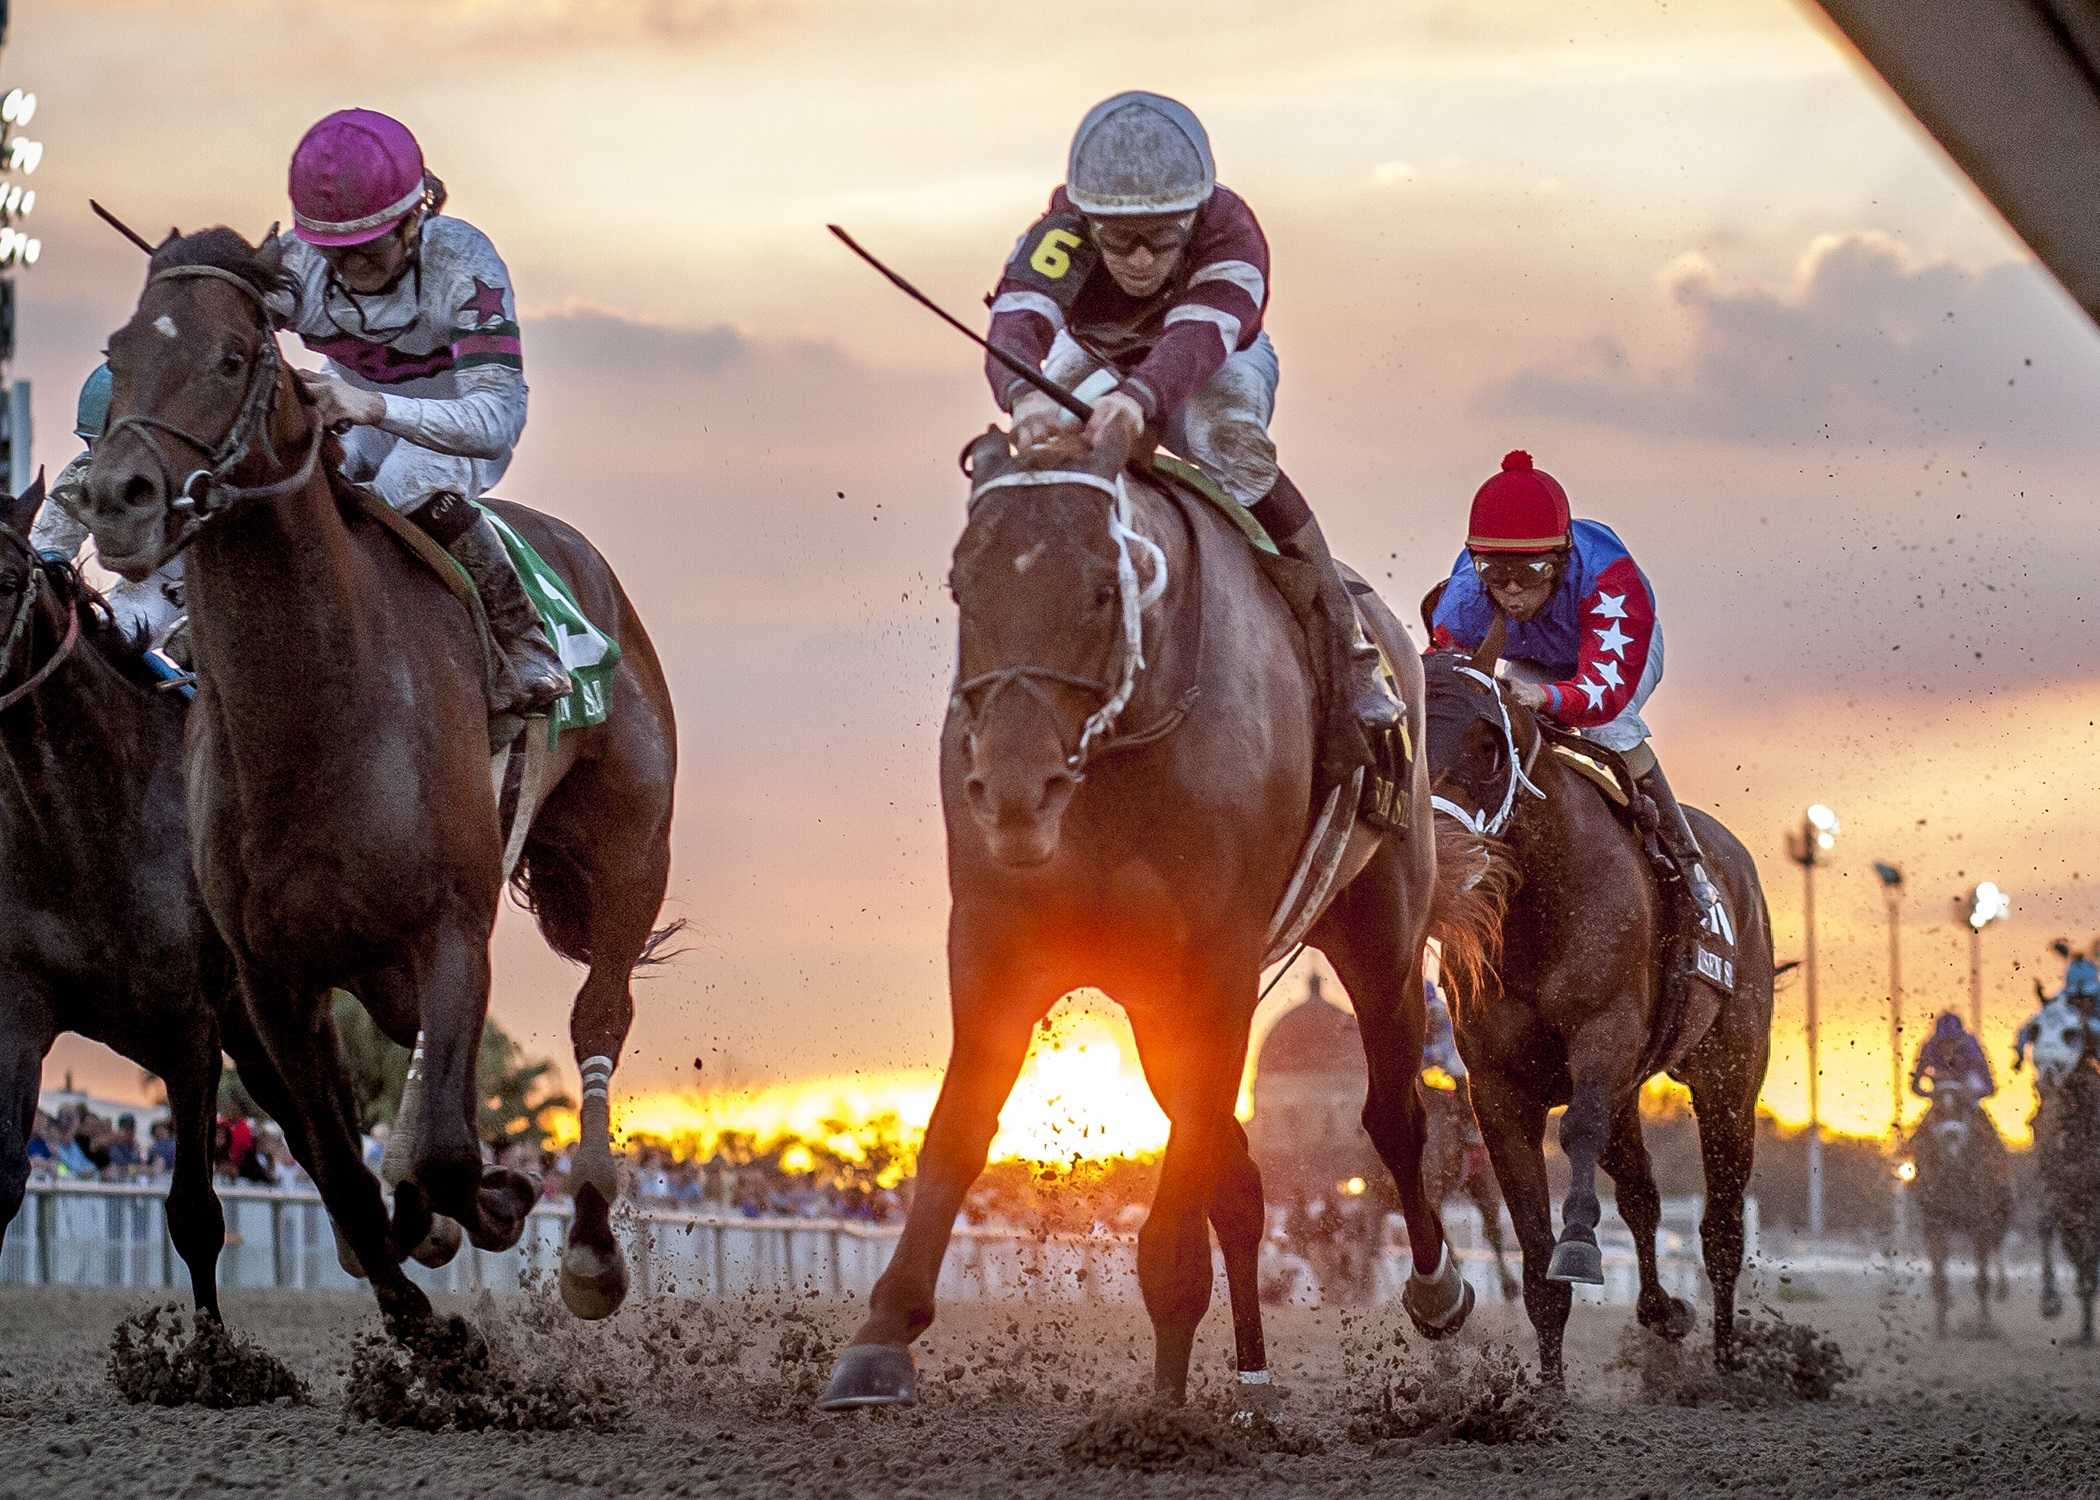 Gun Runner, No 6, with jockey Shaun Bridgmohan aboad, drives to the wire to win the Risen Star Stakes (GrII) at the Fair Grounds Race Course in New Orleans, LA Saturday, February 20, 2016. Photo By Amanda Hodges Weir / Hodges Photography